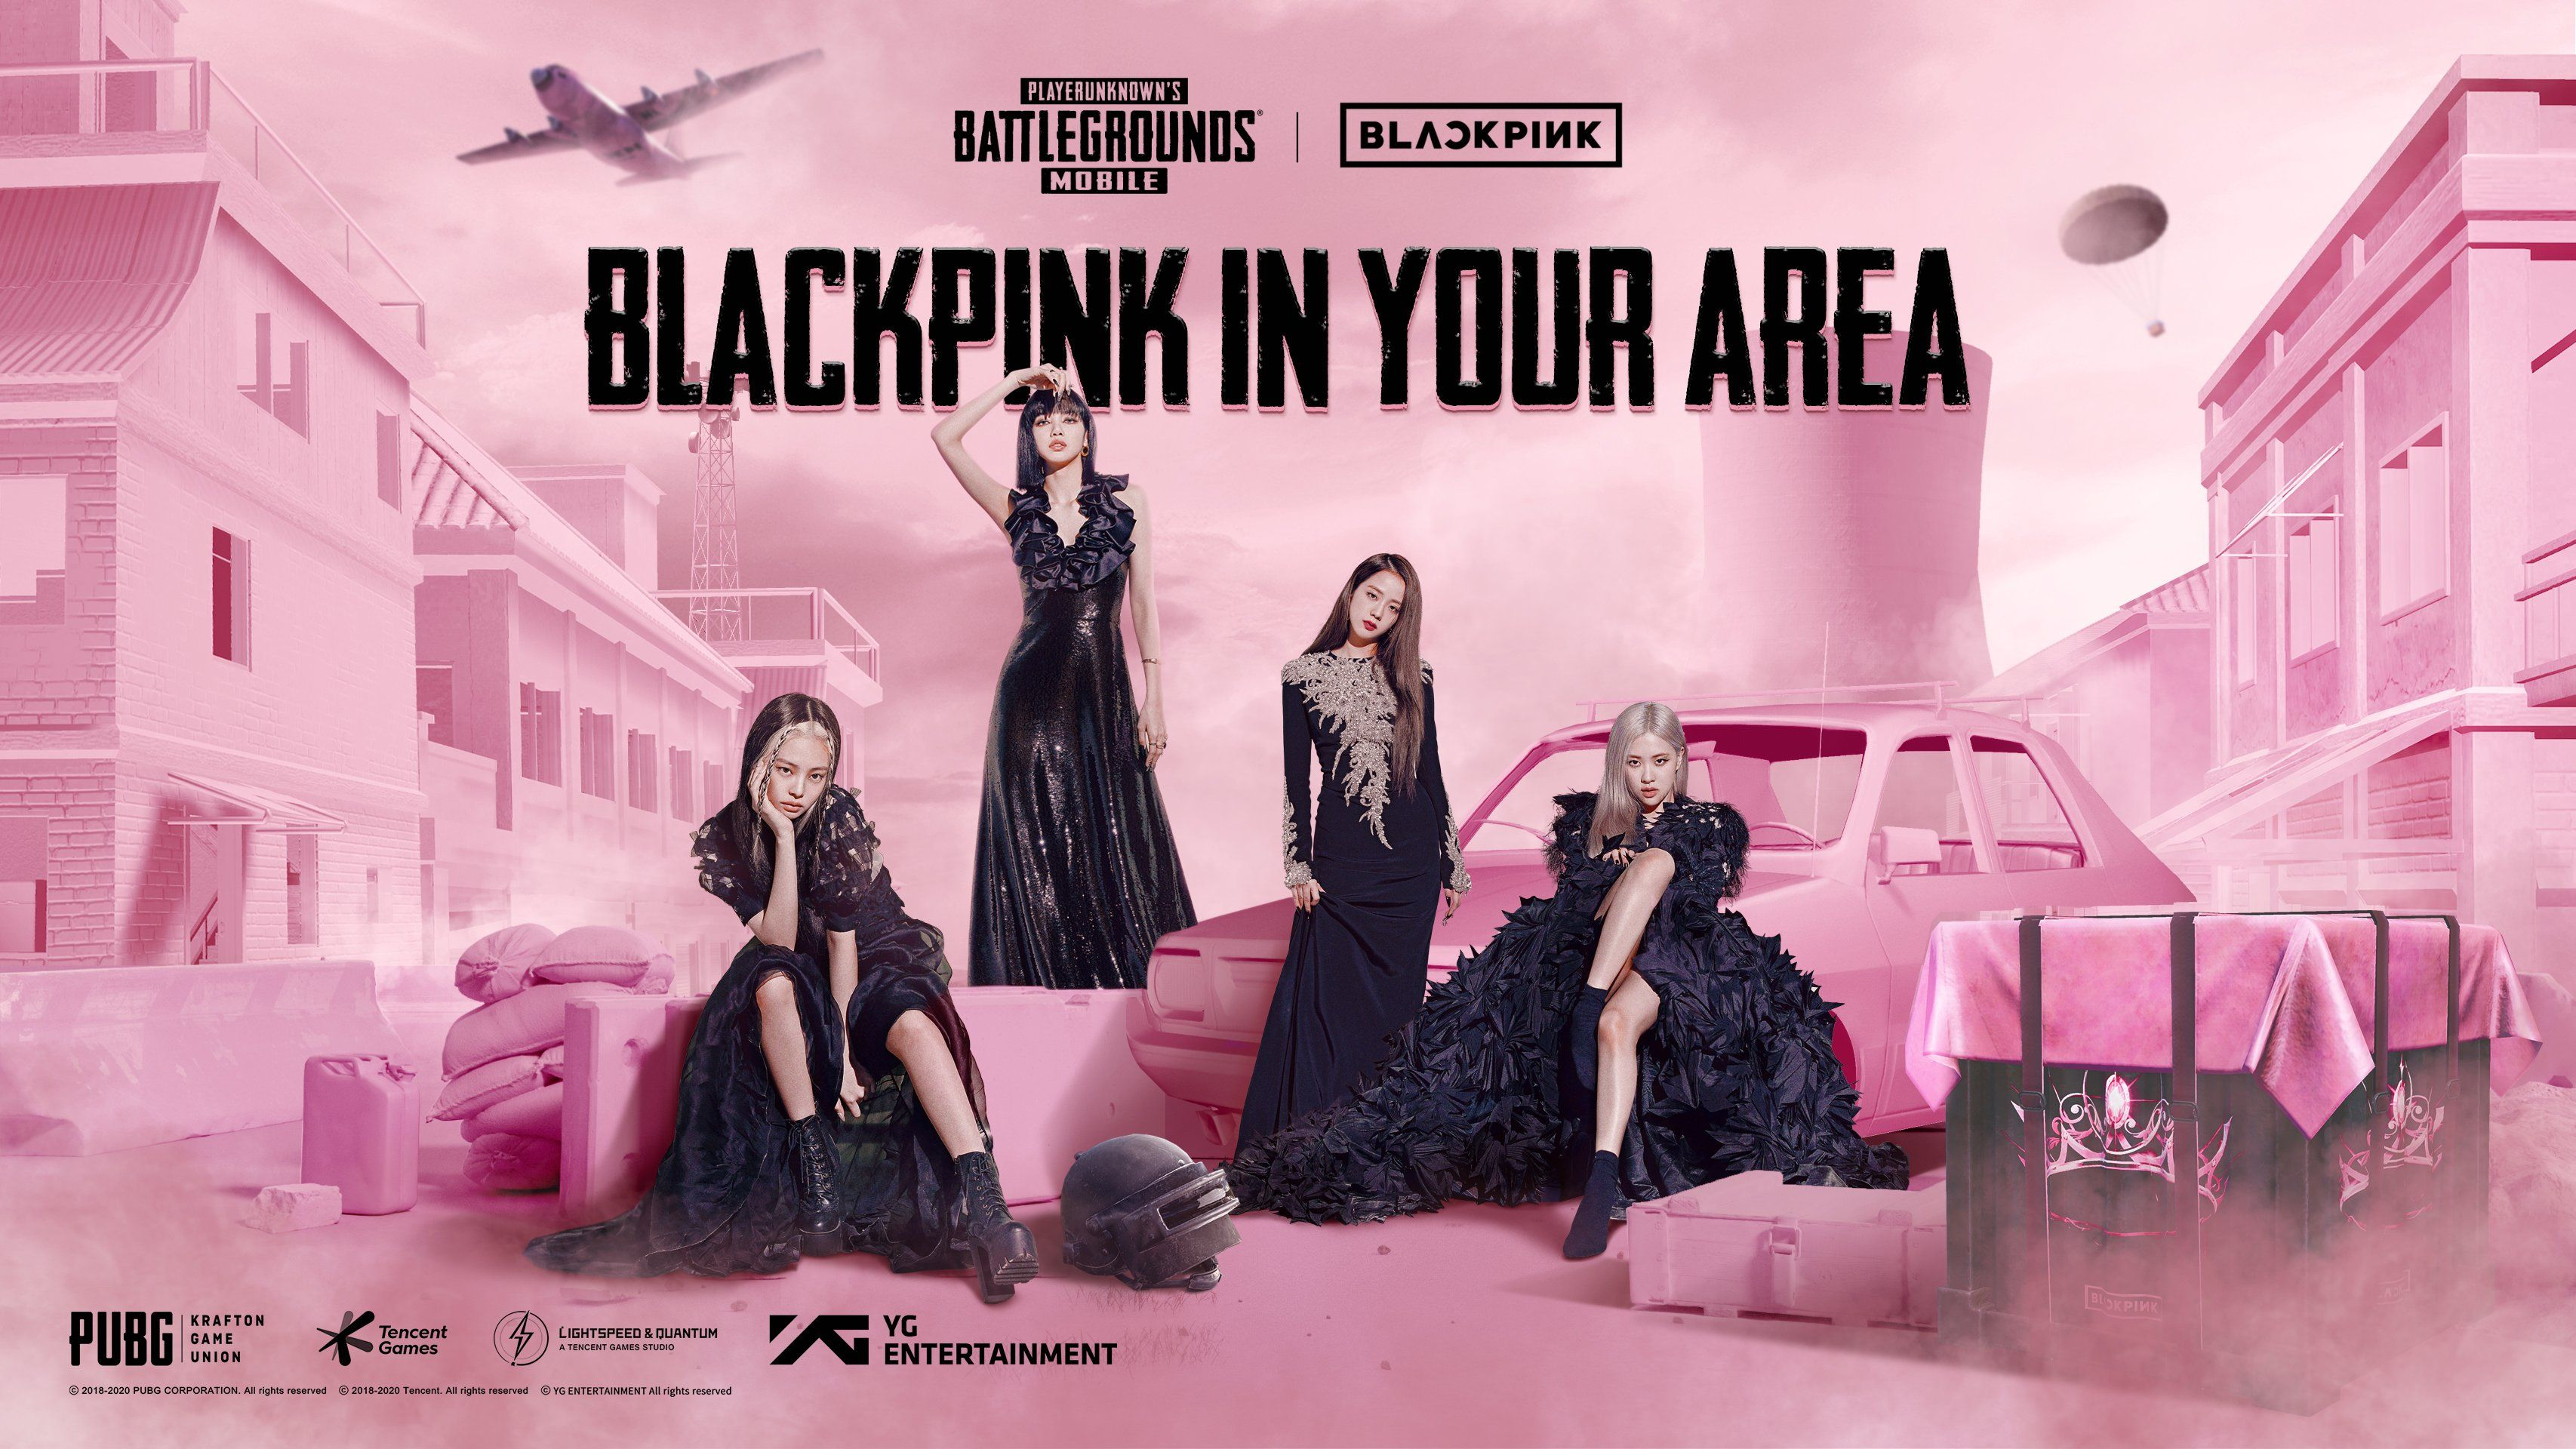 BLACKPINK crossovers to gaming land with PUBG BATTLEGROUNDS collaboration photo from @K_GEN_france